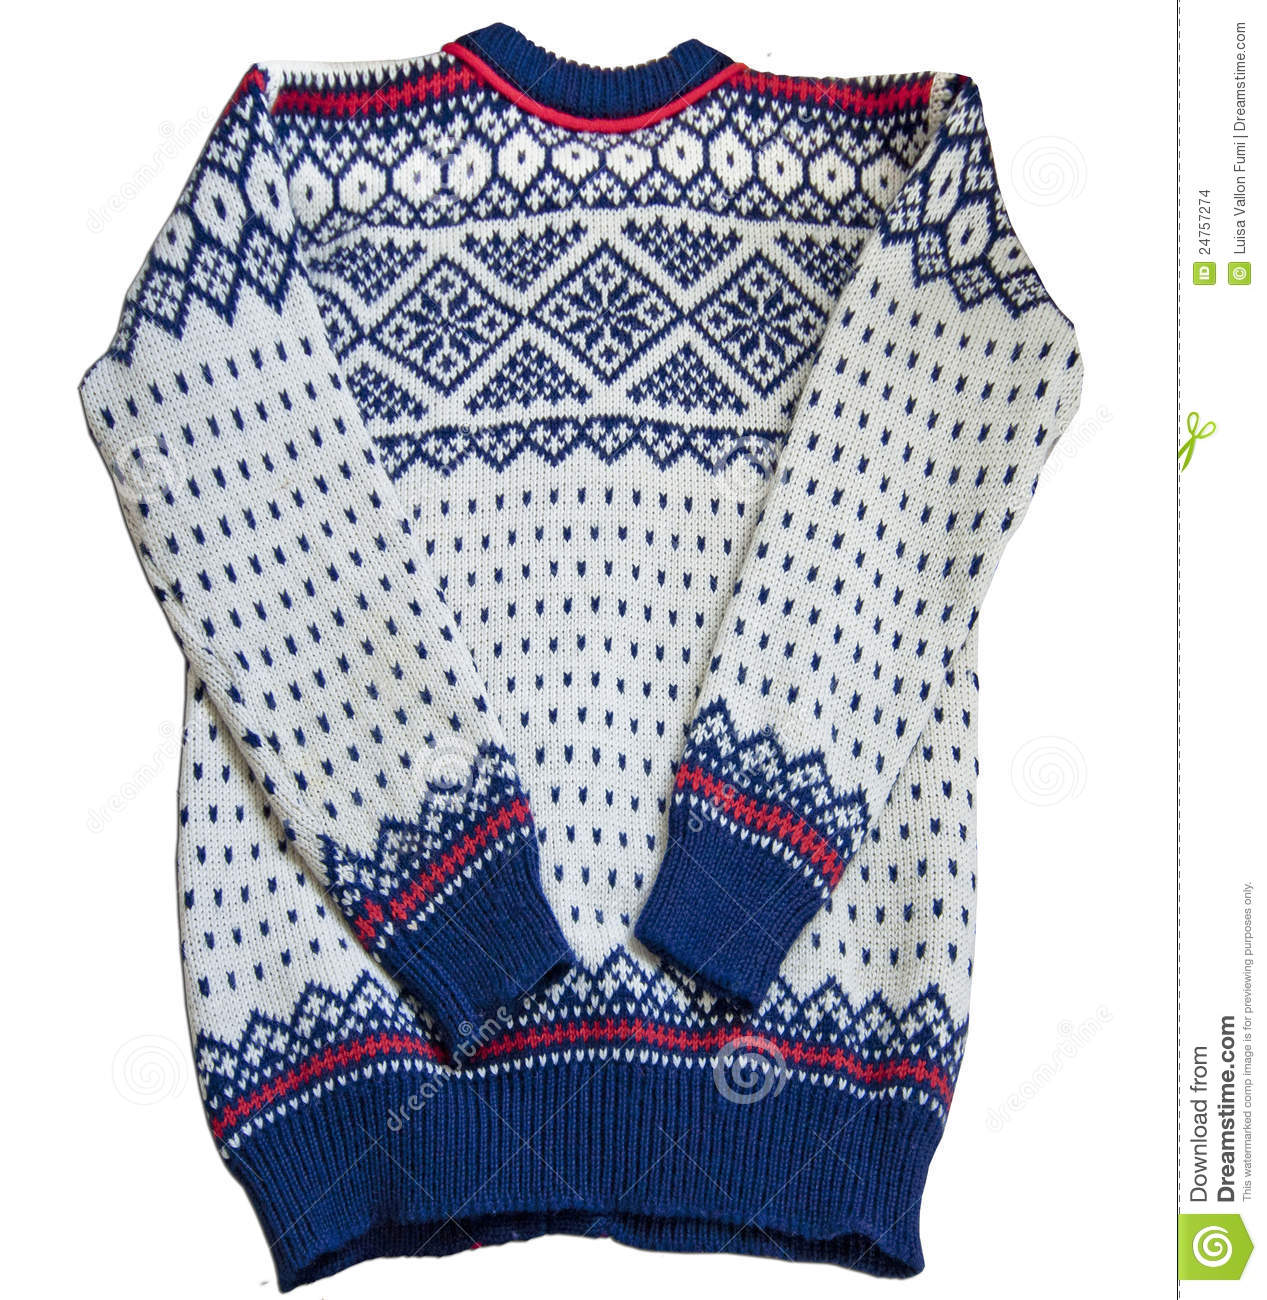 Knitting Patterns For Nordic Sweater : Nordic Sweater Jacquard Stock Images - Image: 24757274